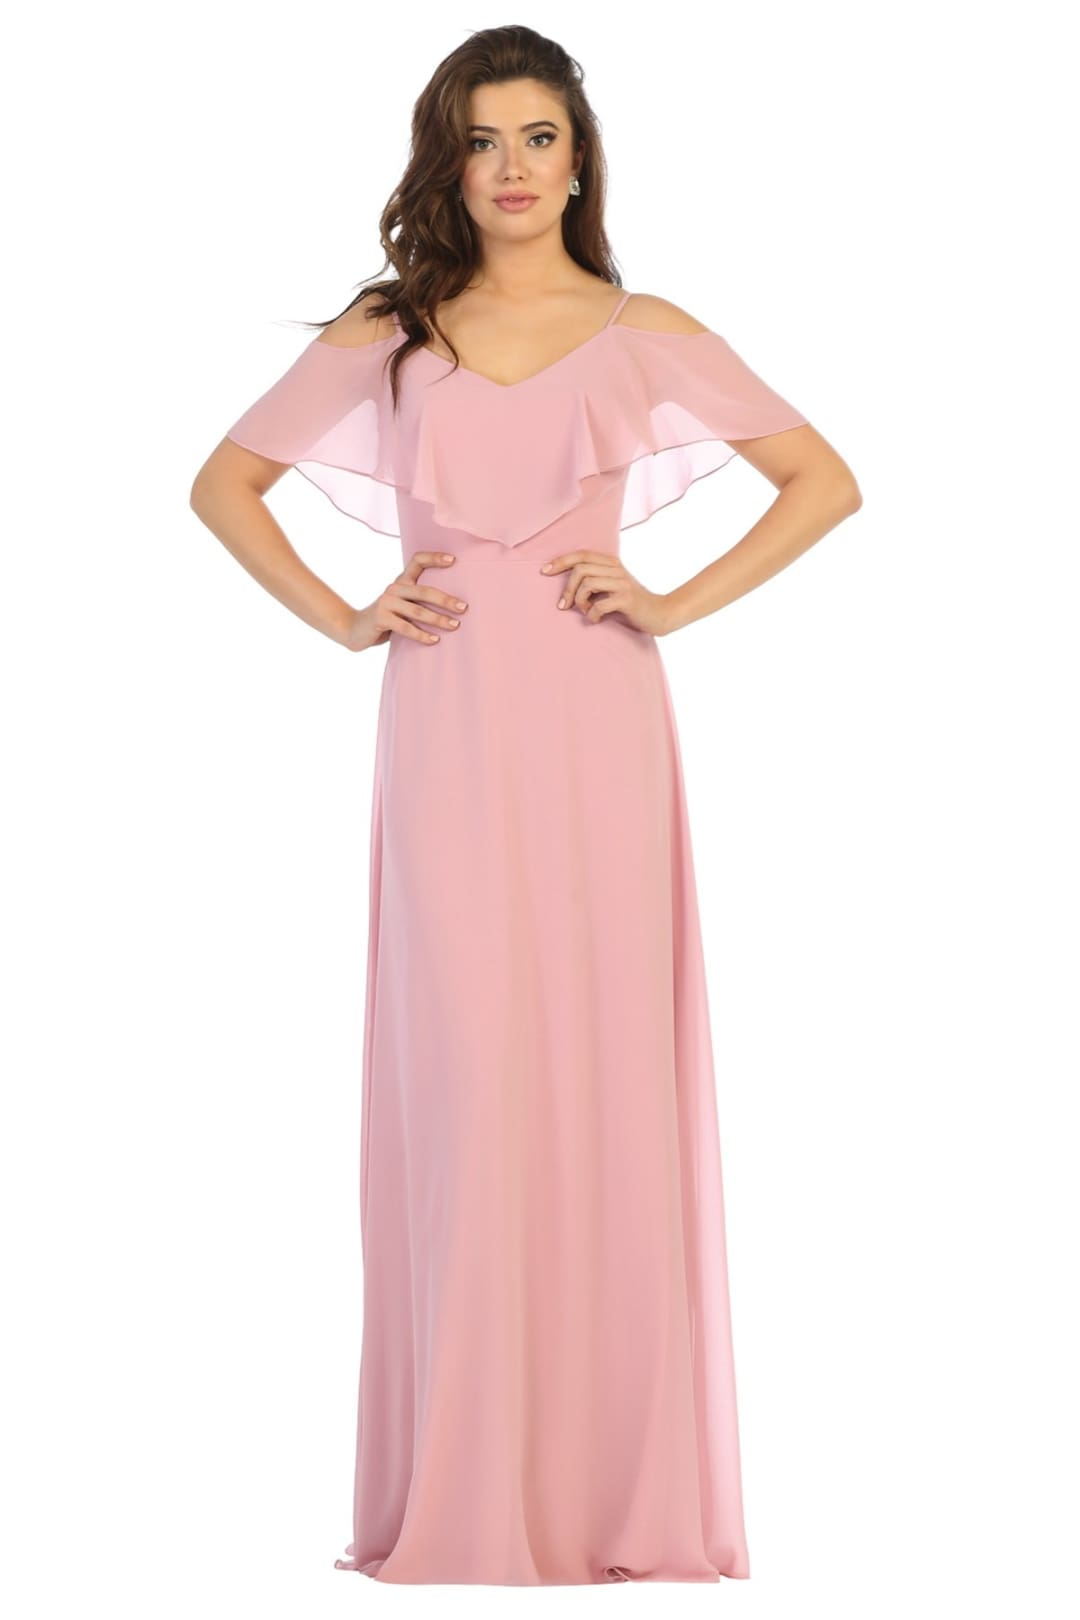 Simple & Elegant Dress - Dusty Rose / 4